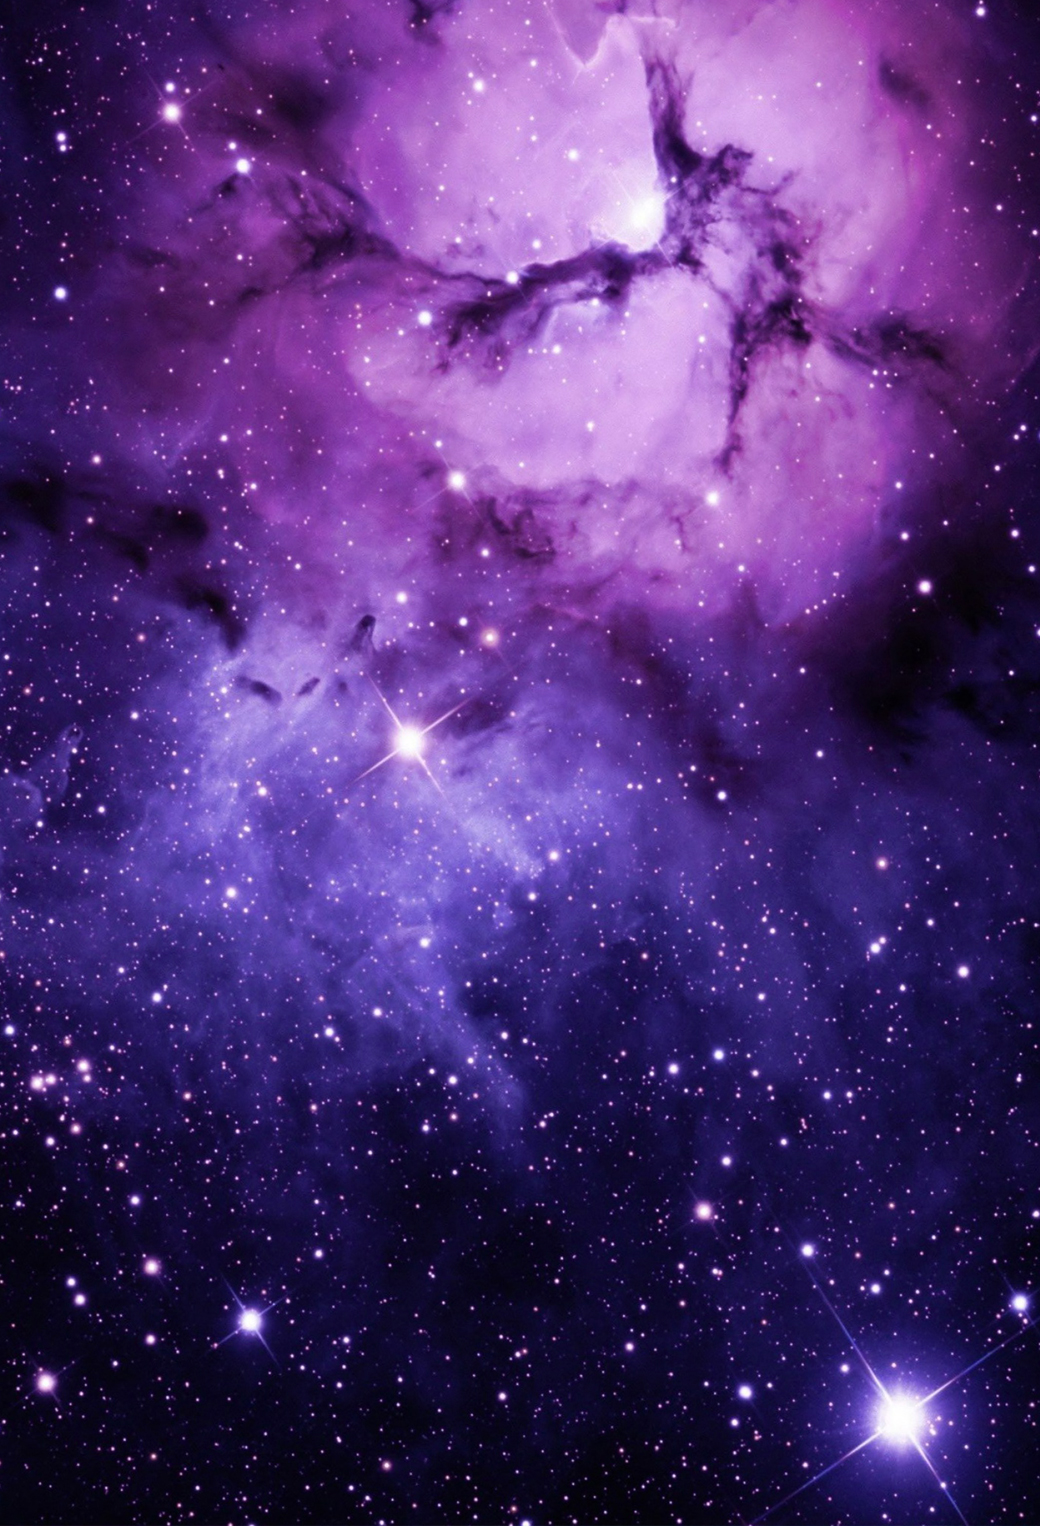 Wallpaper Retina iPhone 5 iPad Galaxy 1040x1526